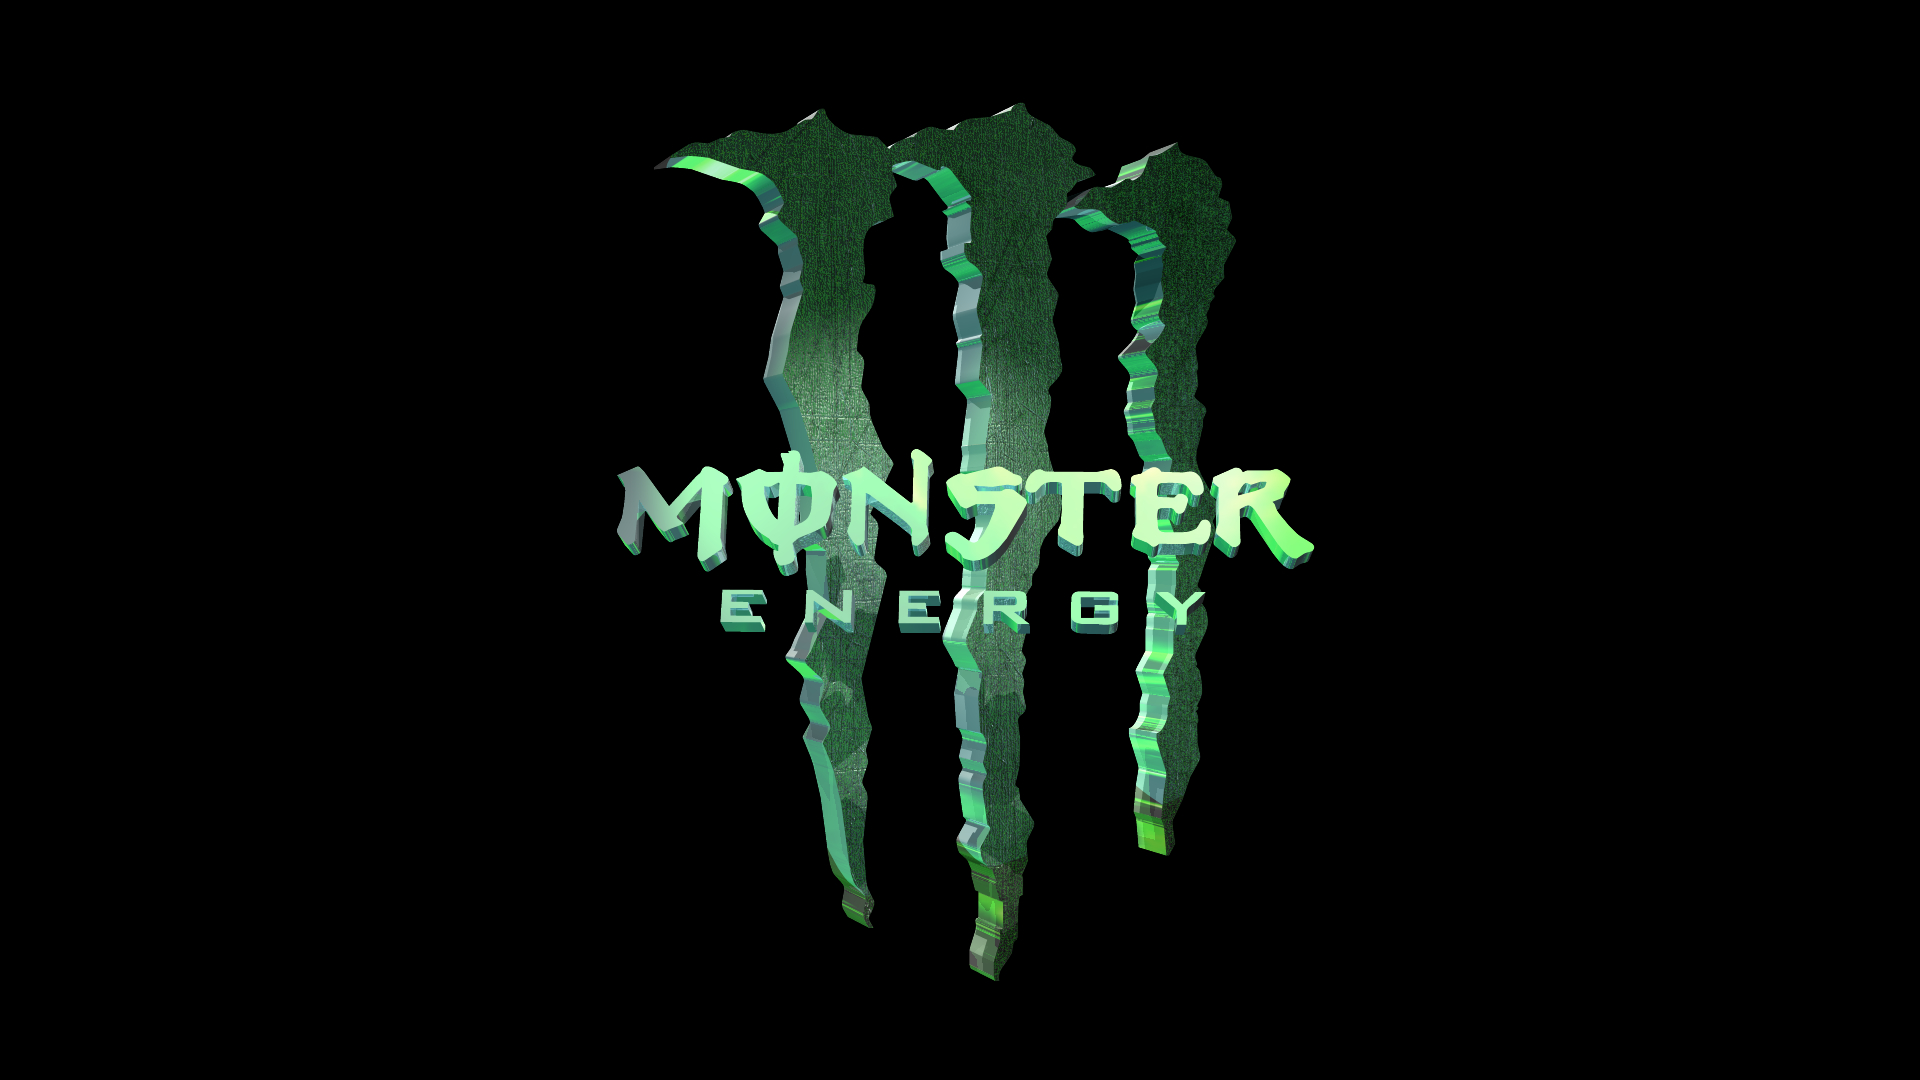 Monster Energy Logo Wallpaper Images amp Pictures   Becuo 1920x1080